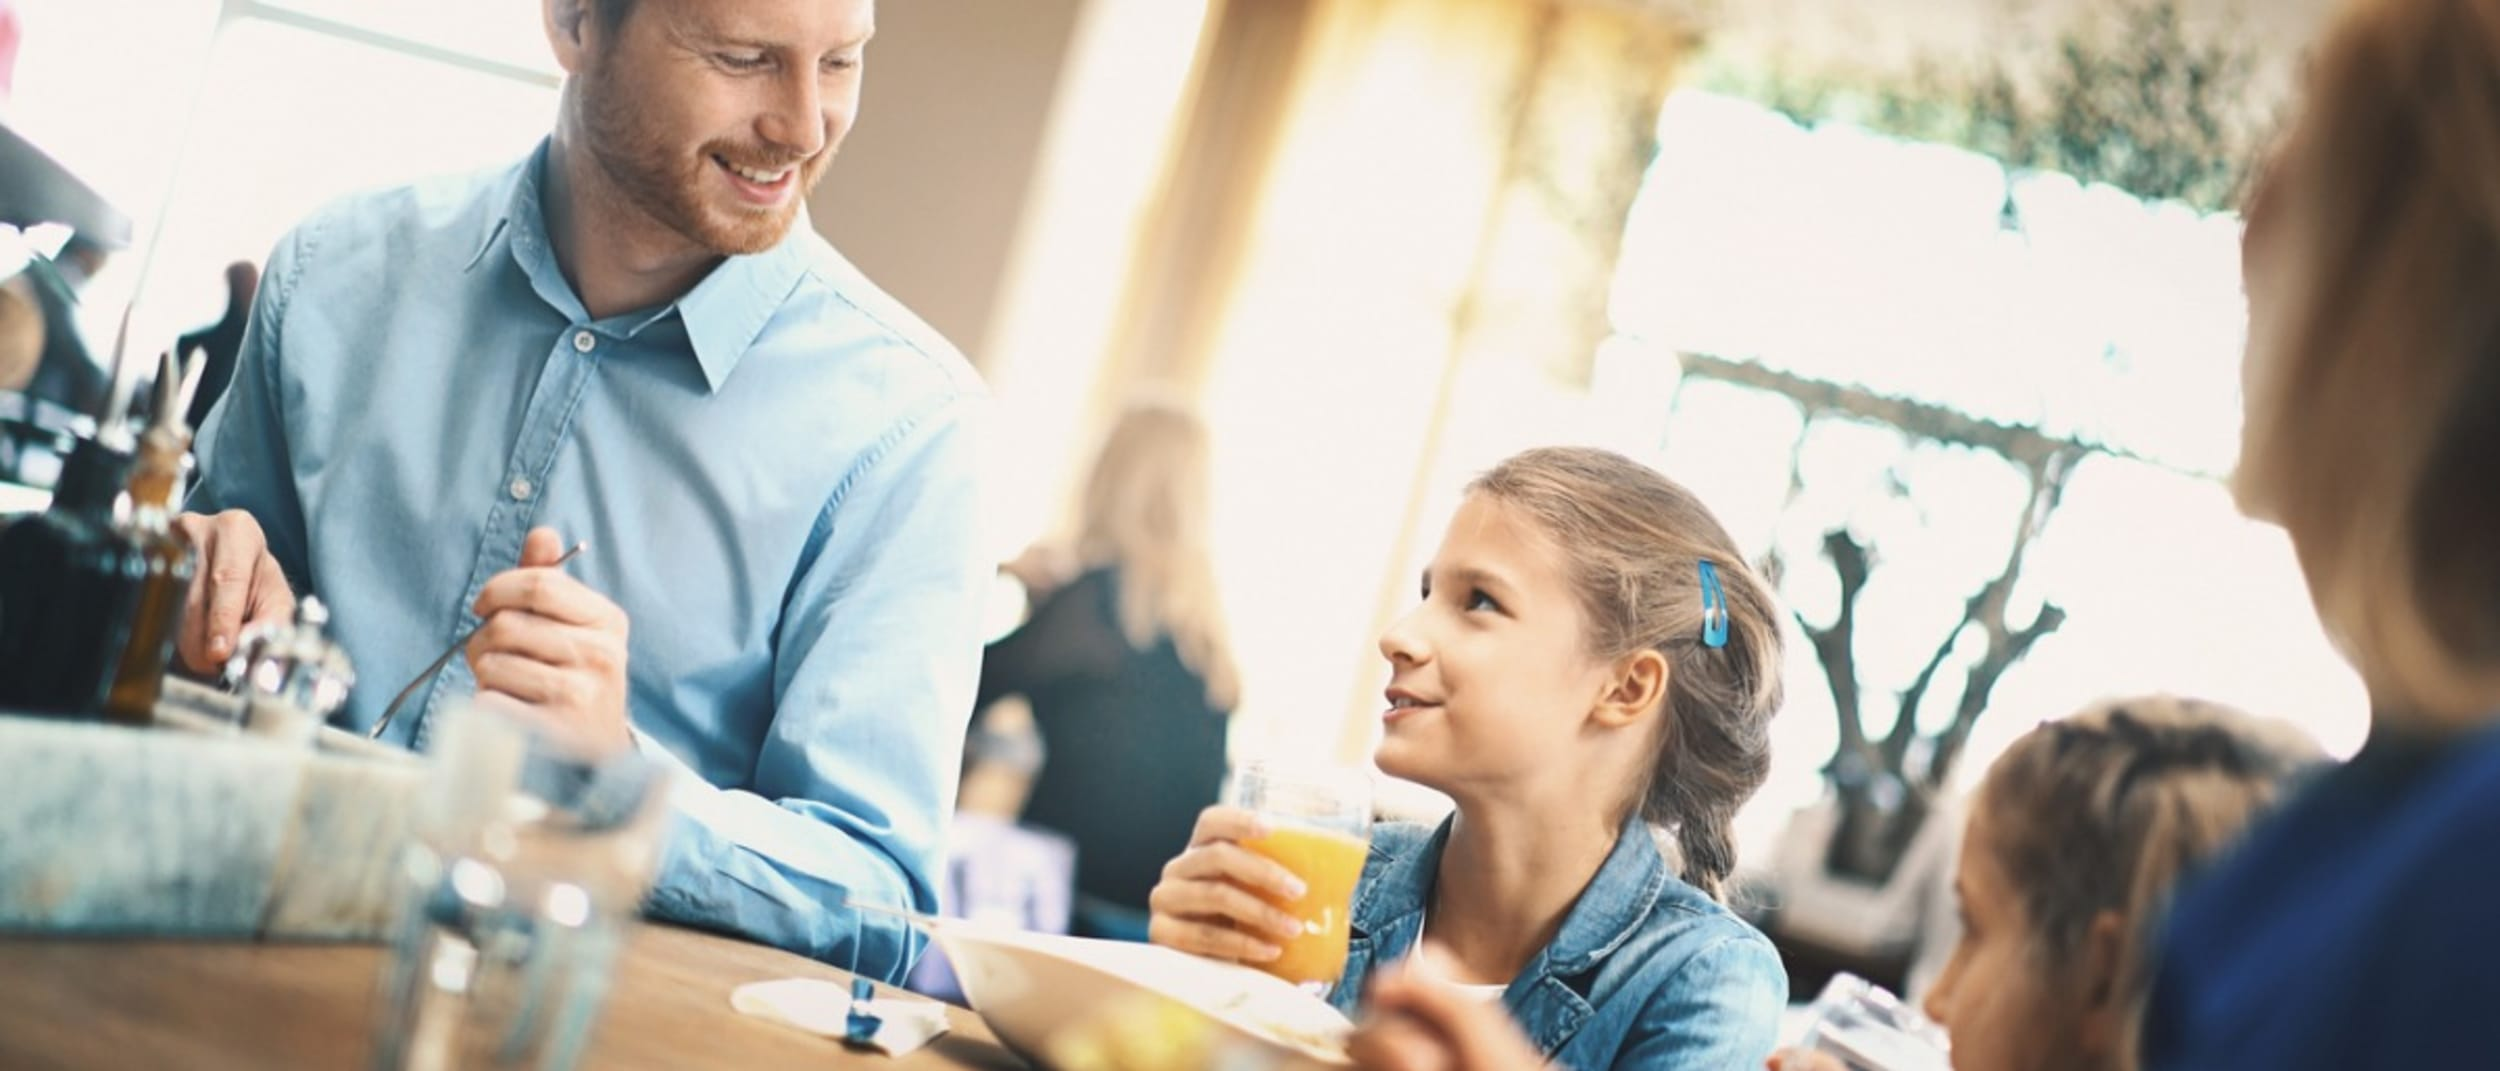 The Bavarian: Kids eat free every day from 11am to 4pm